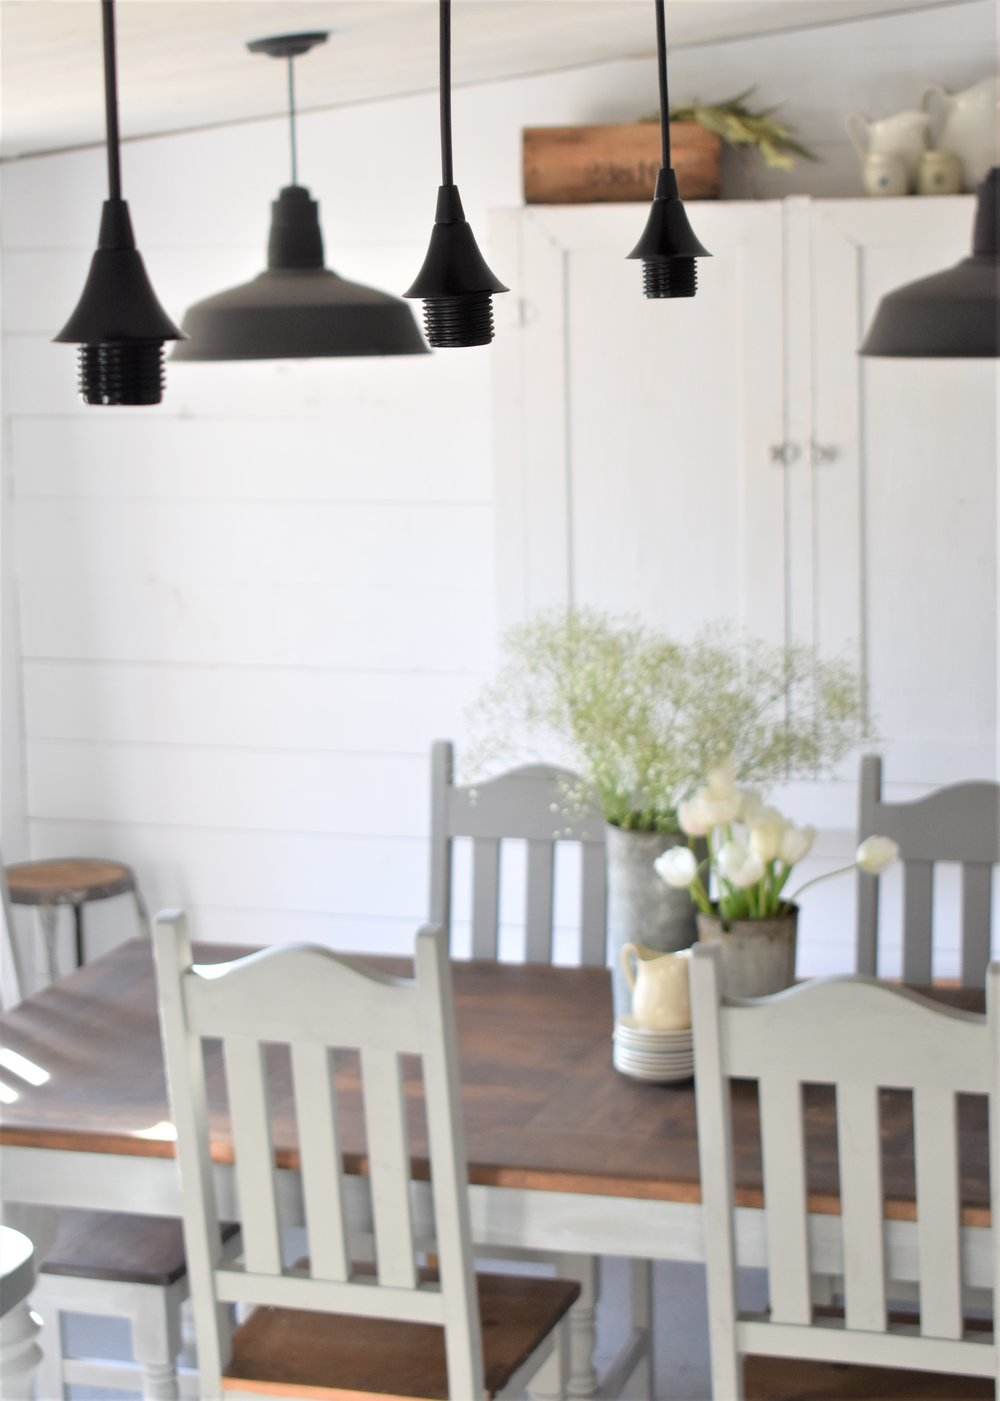 DIY Farmhouse Style Kitchen Light